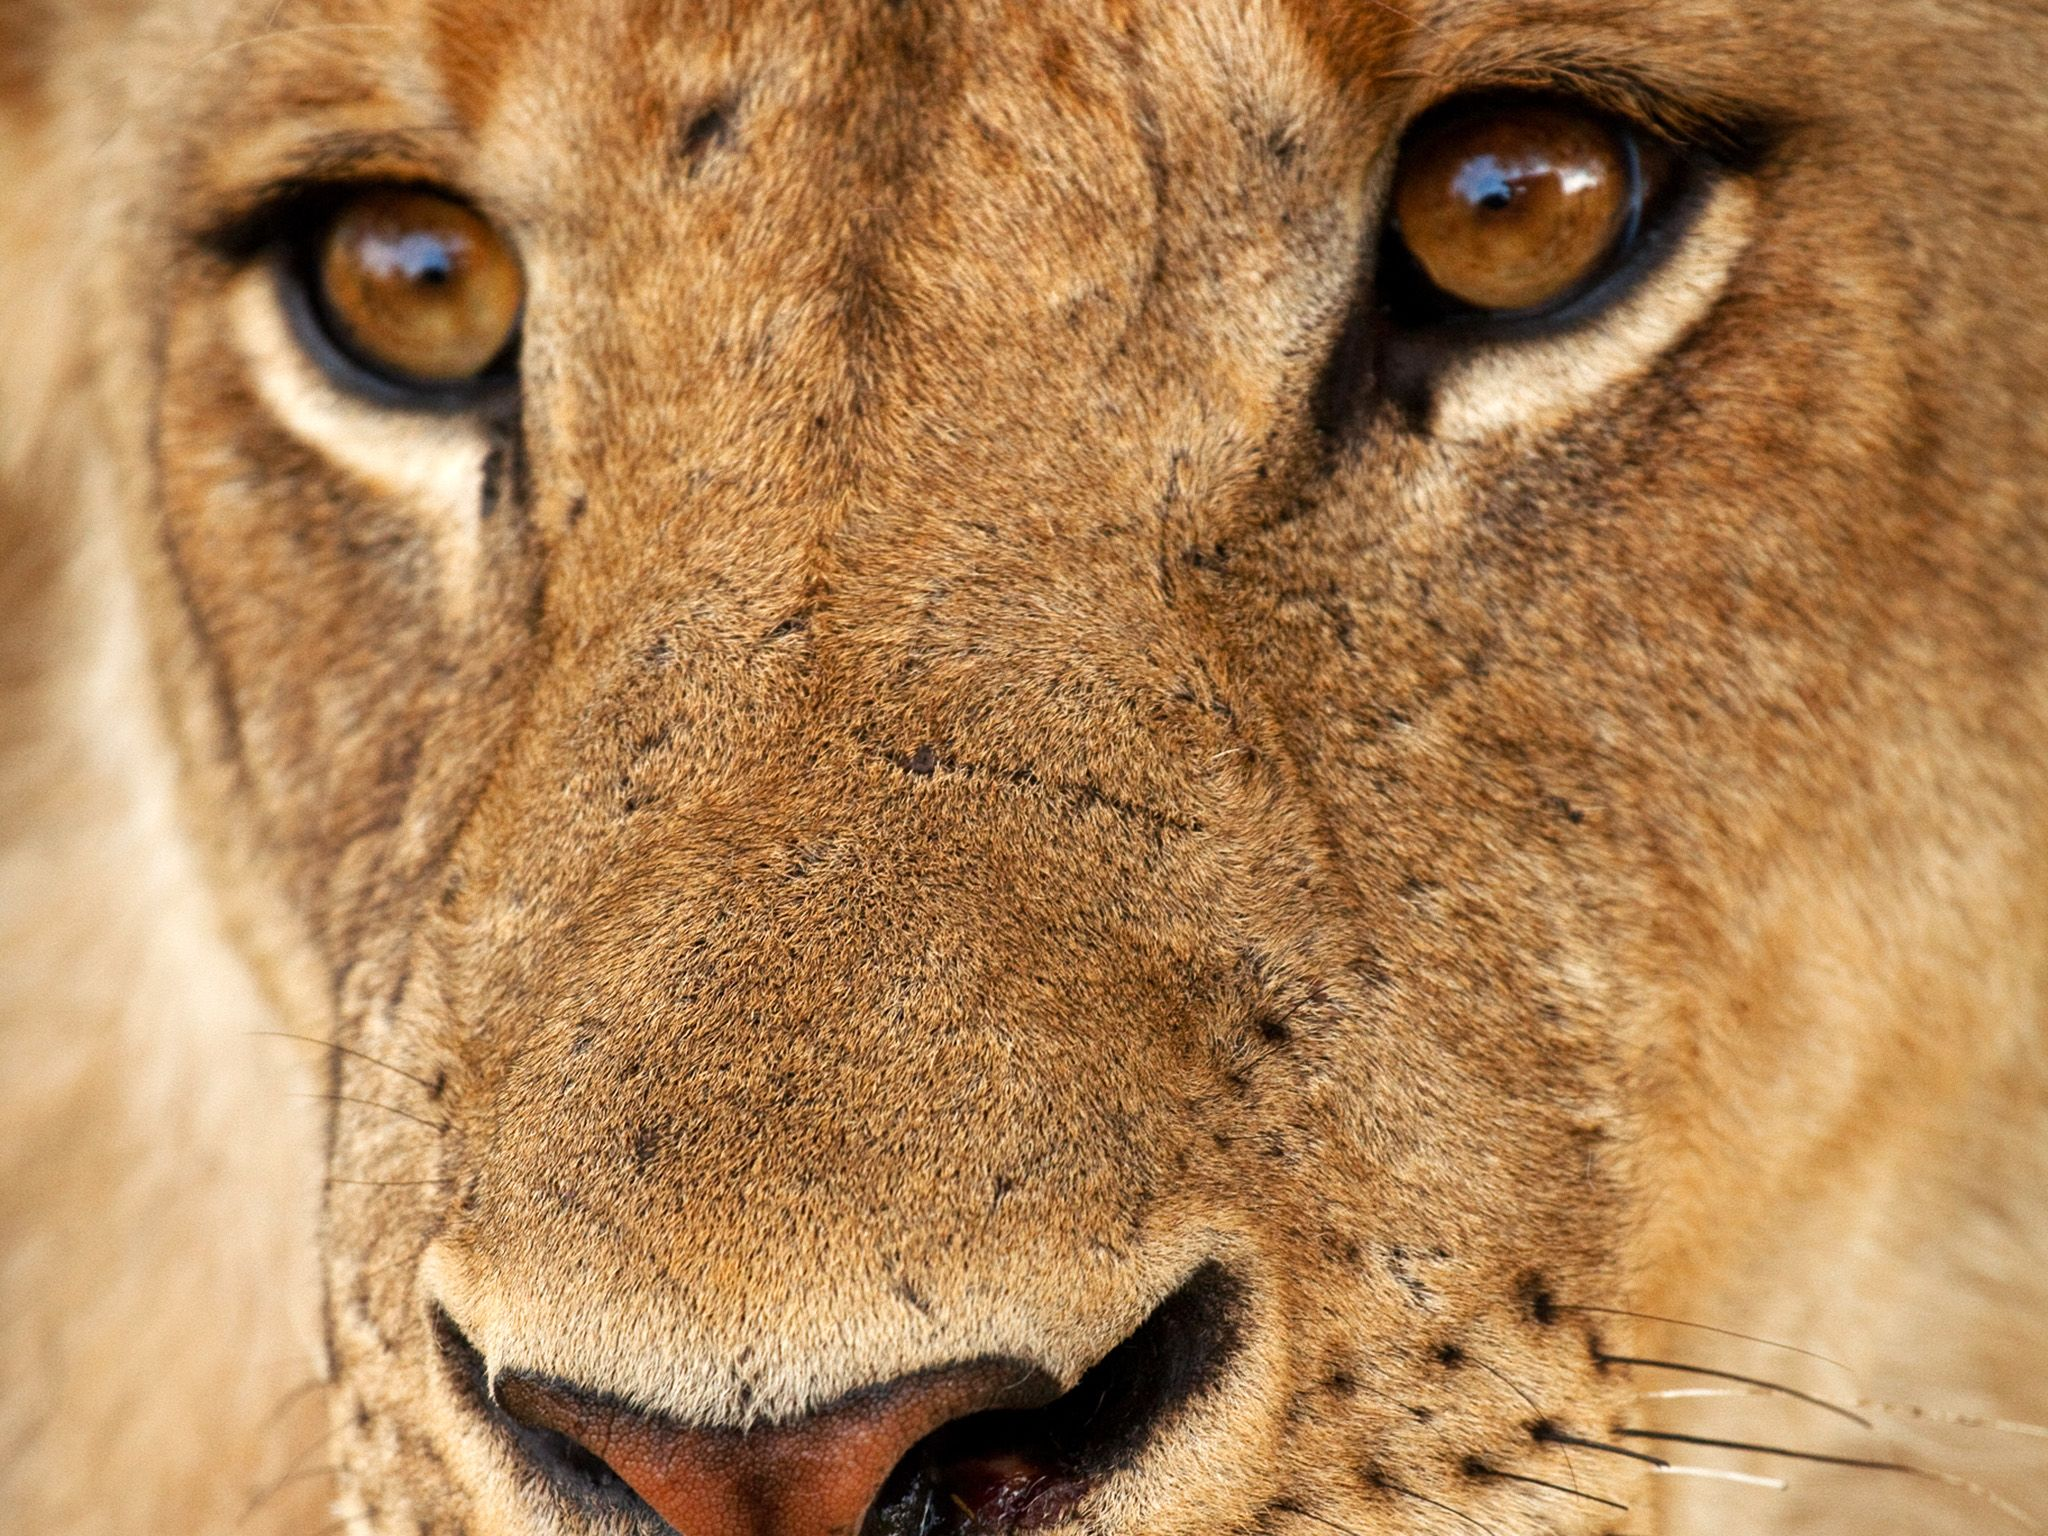 Young lion face. Young males are expelled from the pride by the age of three. This image is from ... [Фото дня - Октябрь 2014]